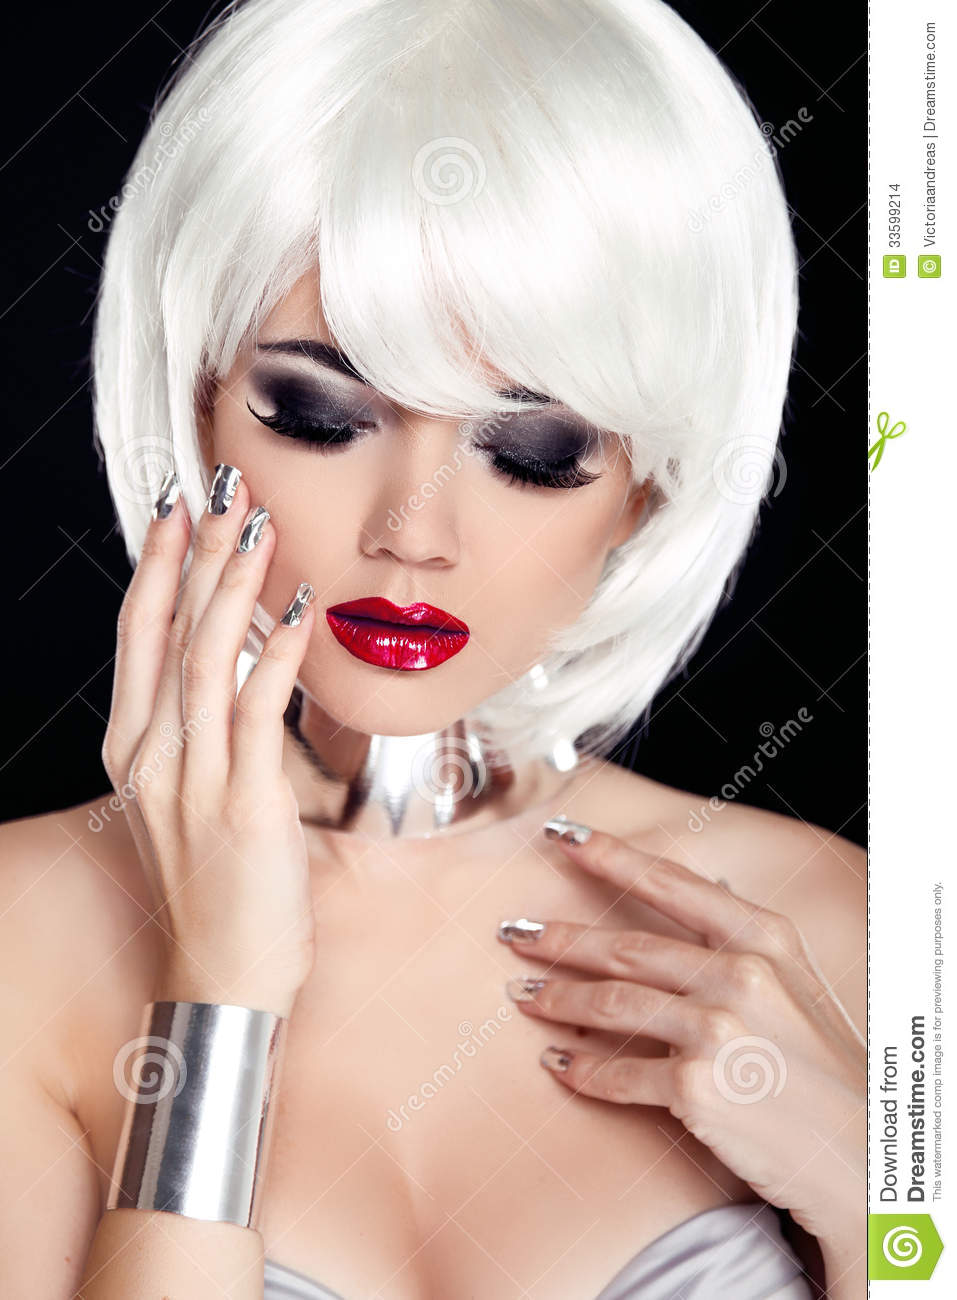 Sexy girls with white hair